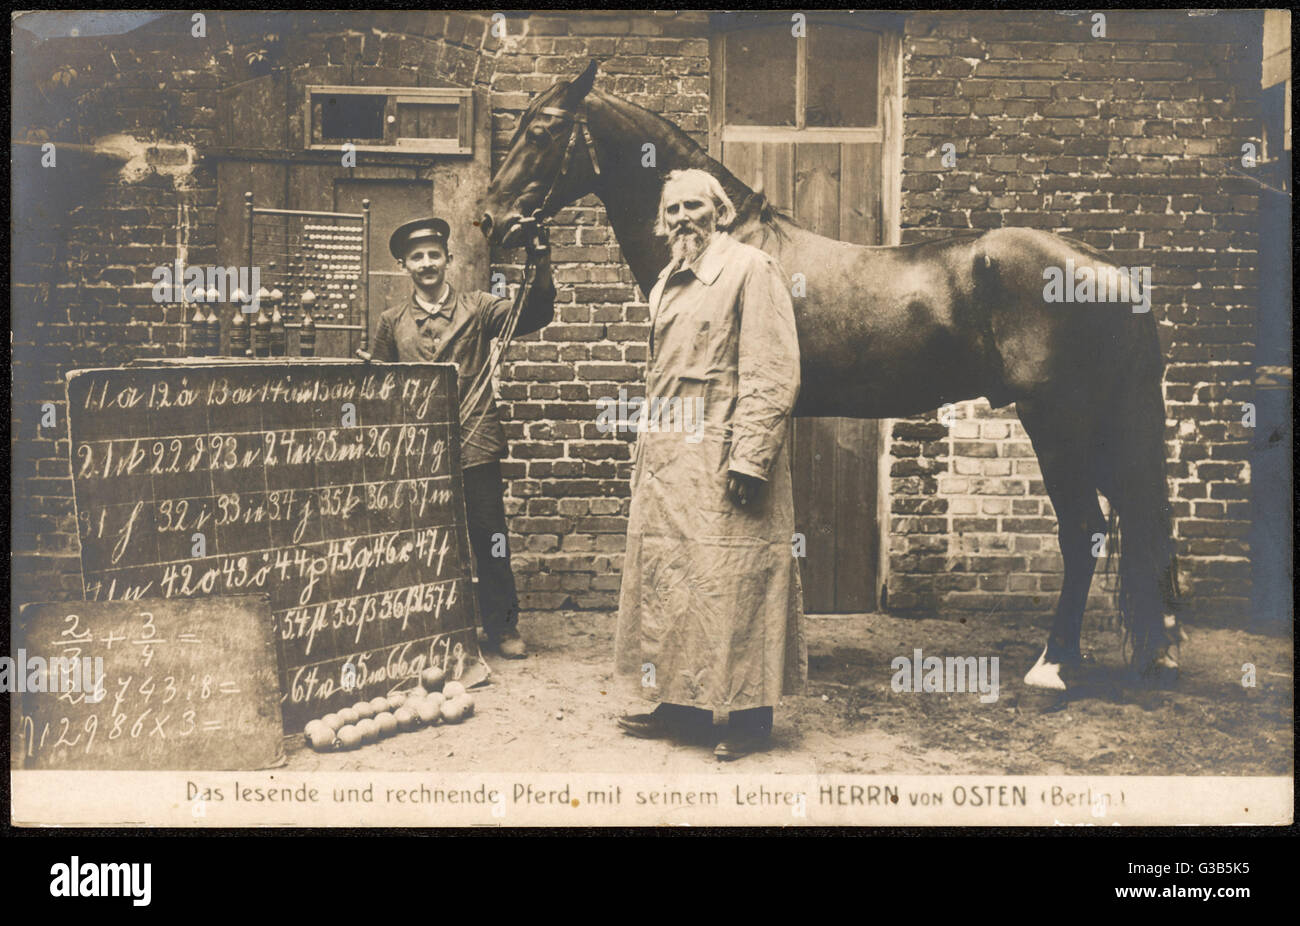 'Hans' a horse of singular  mathmatical skill, with his handler, and his tutor Wilhelm von Osten, who was - Stock Image